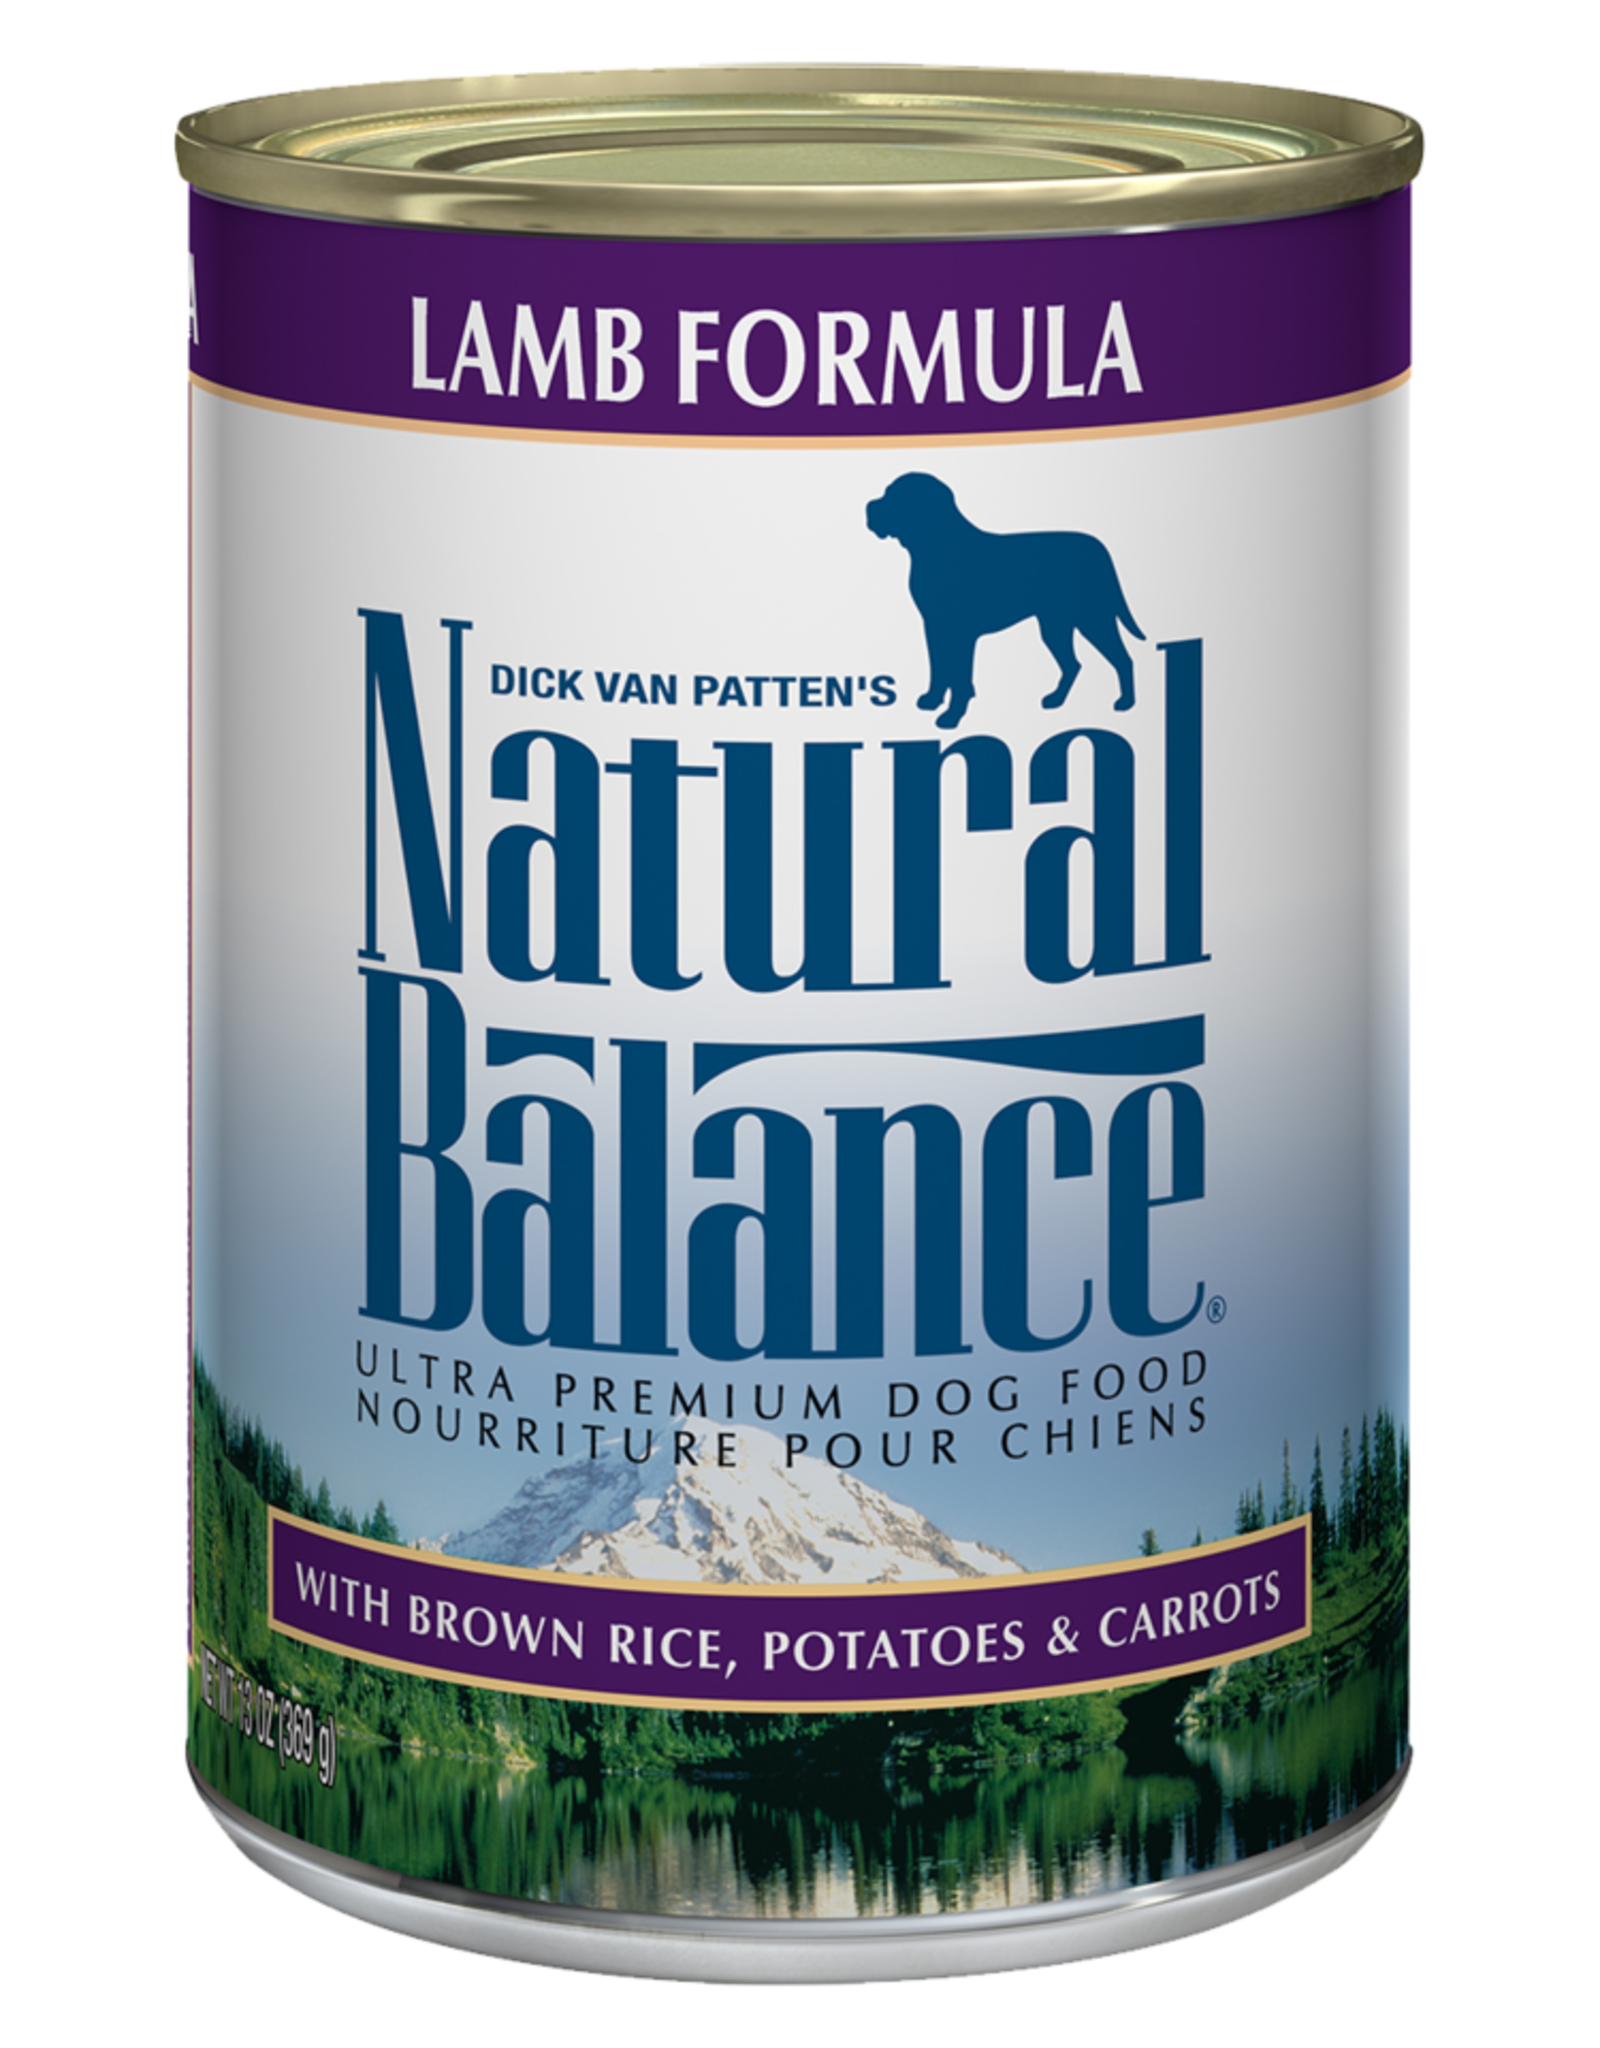 NATURAL BALANCE PET FOODS, INC NATURAL BALANCE DOG LAMB FORMULA CAN 13OZ